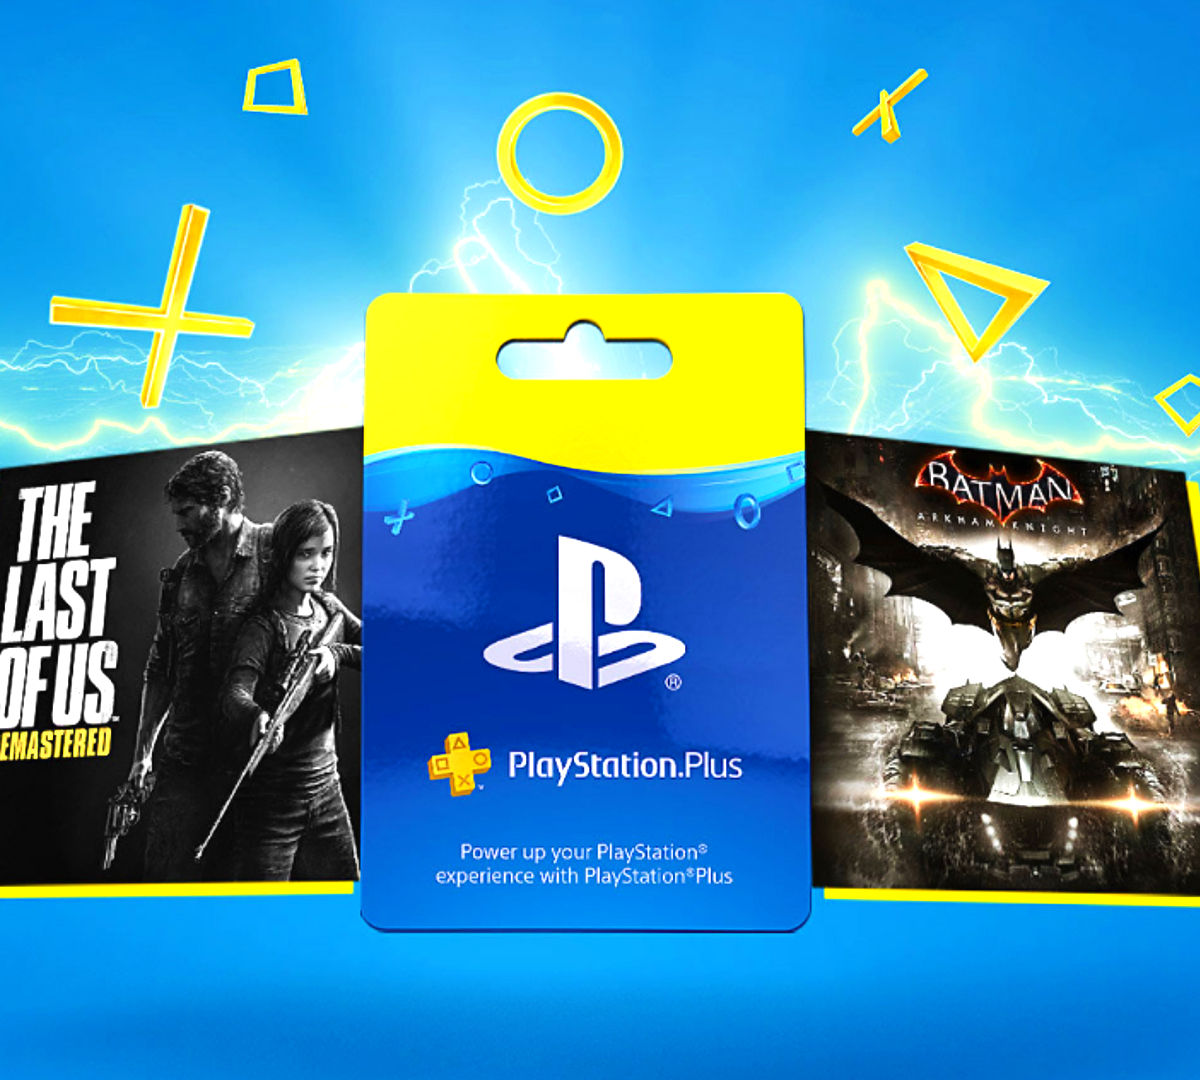 PlayStation Plus membership cards make for great Christmas gift ideas for gamers.